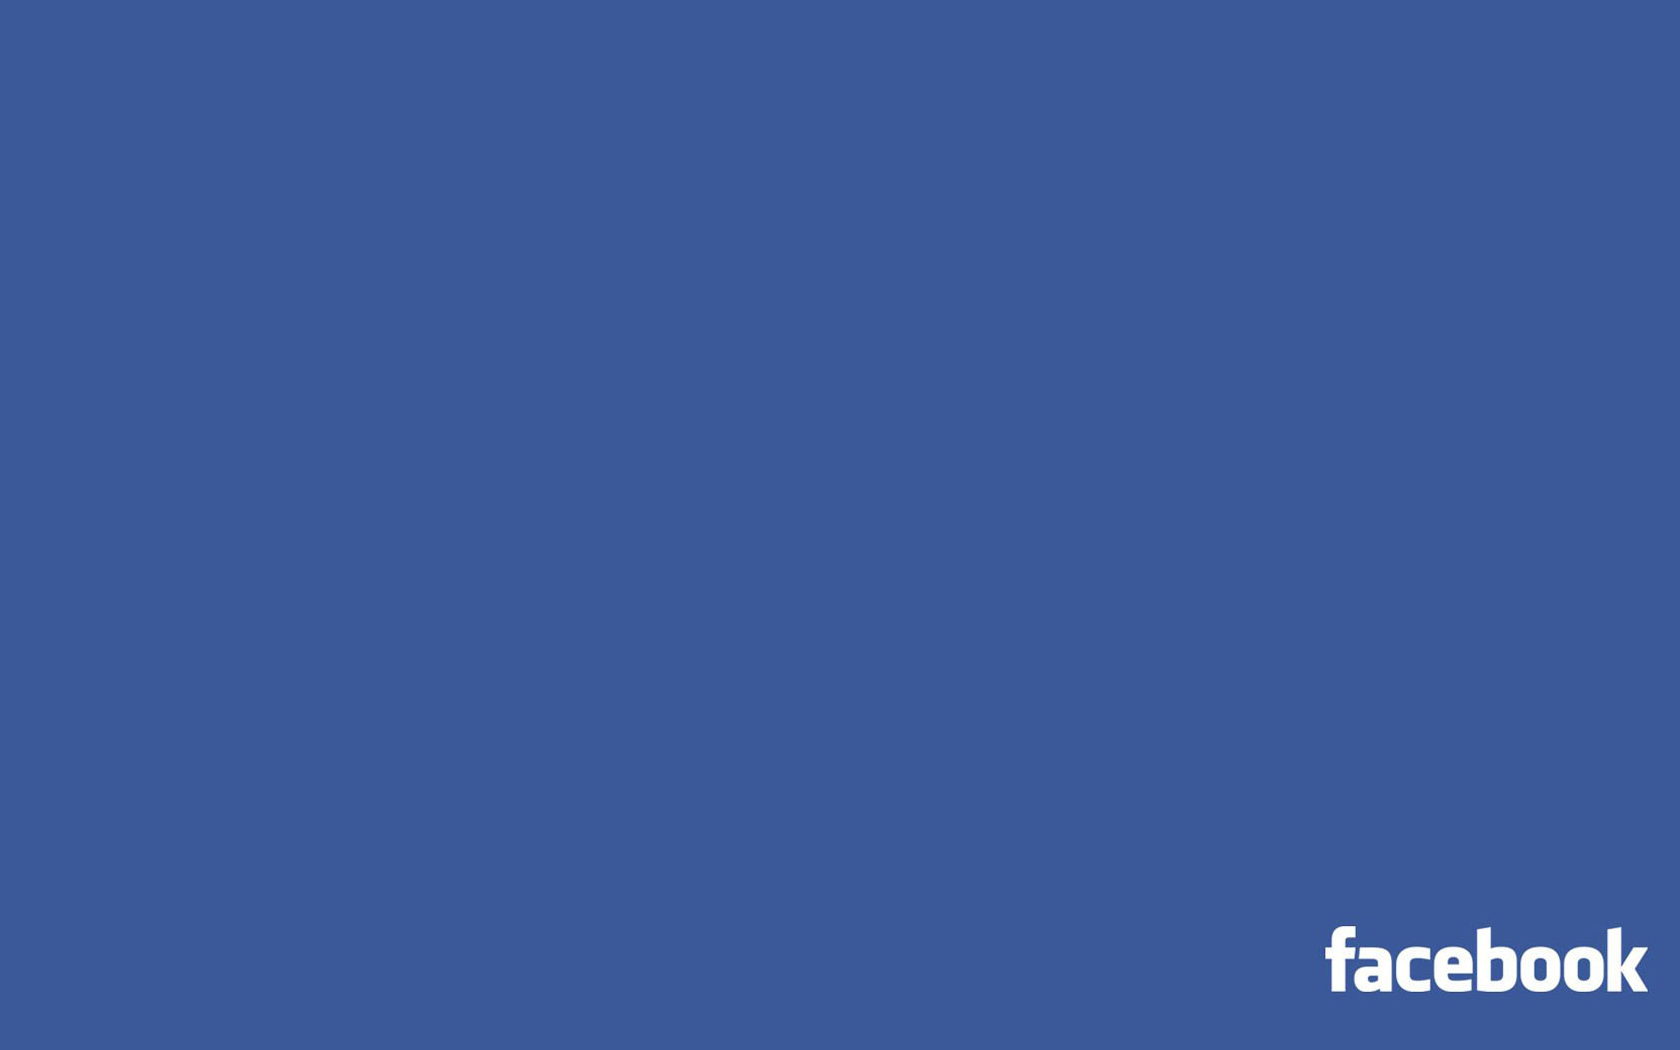 Facebook Minimalistic Wallpaper